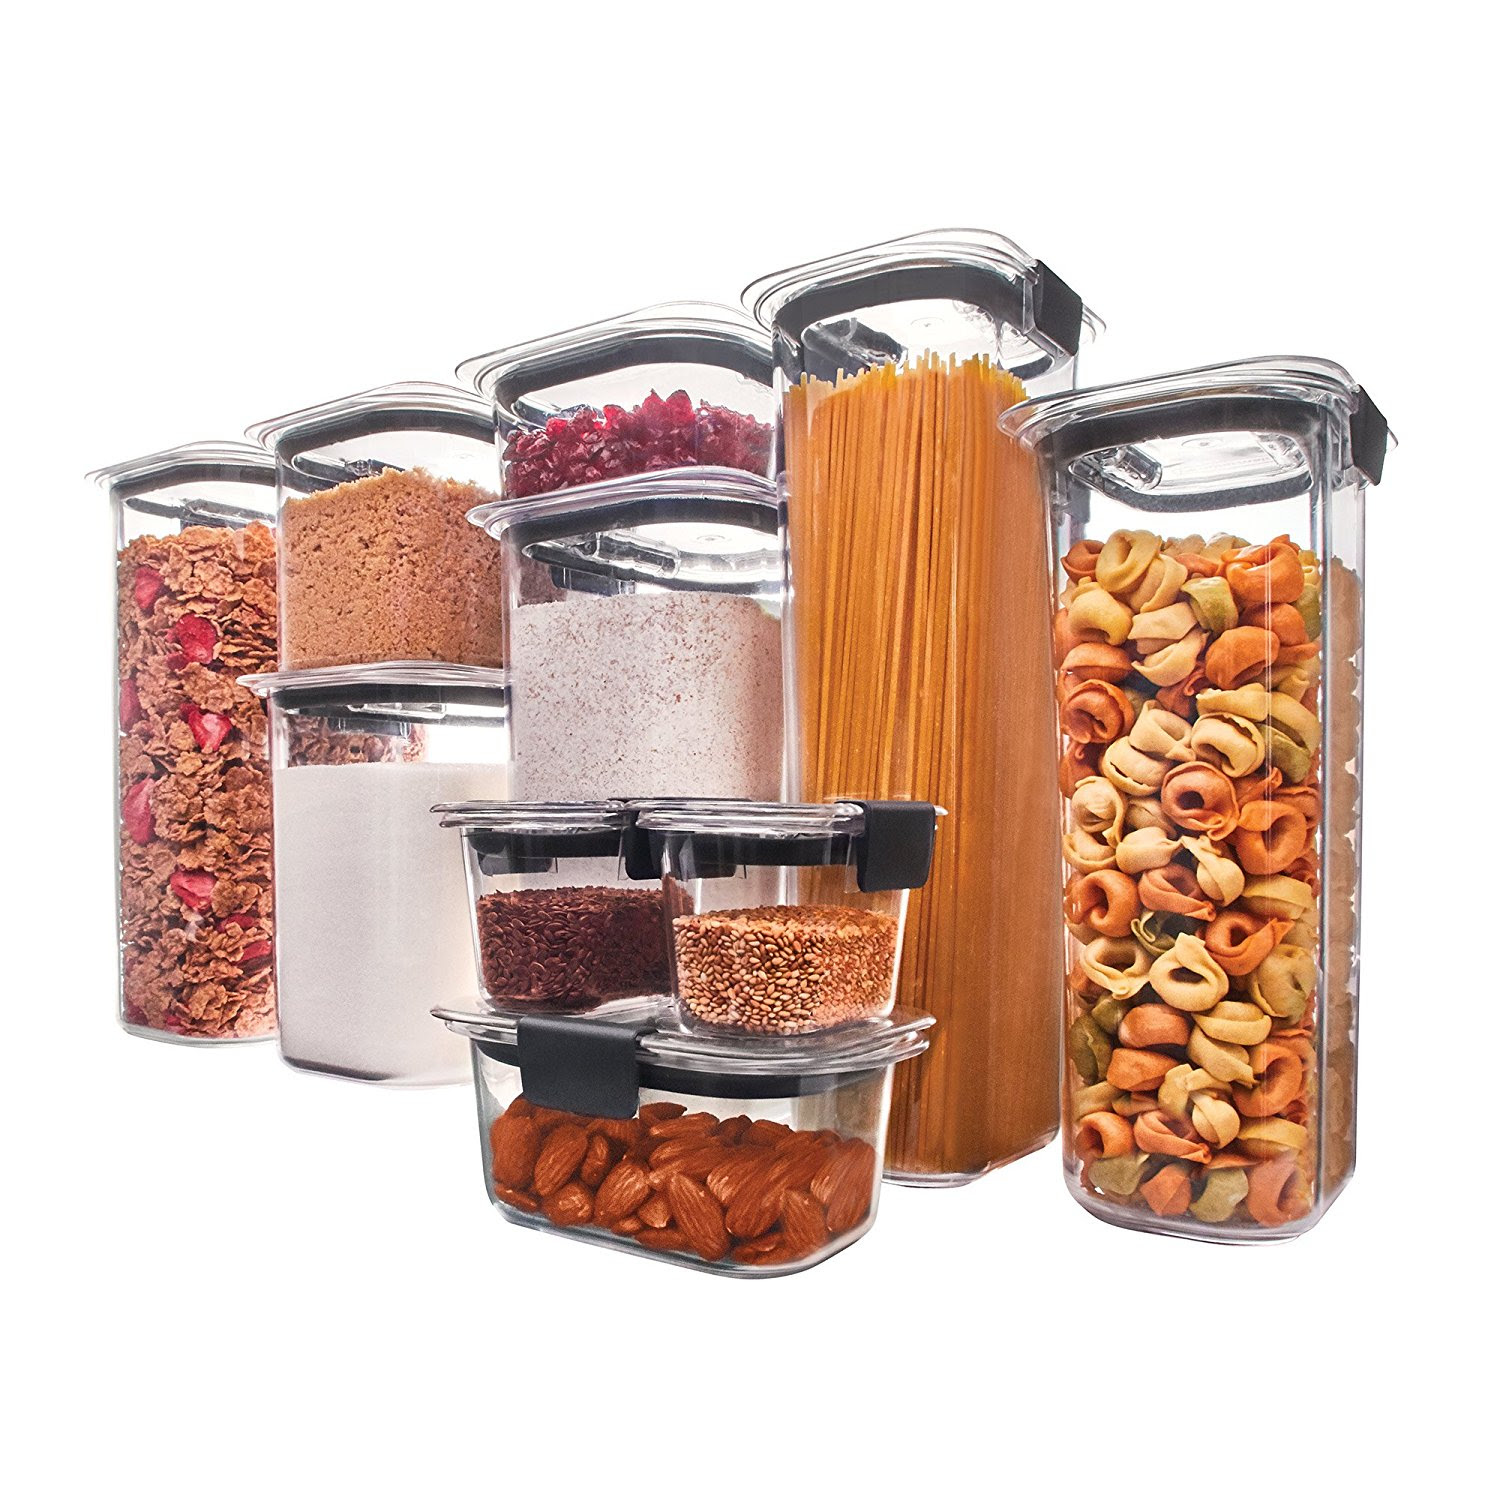 Rubbermaid Brilliance Food Storage Container 10-Piece Set $41.95 Shipped - Wheel N Deal Mama